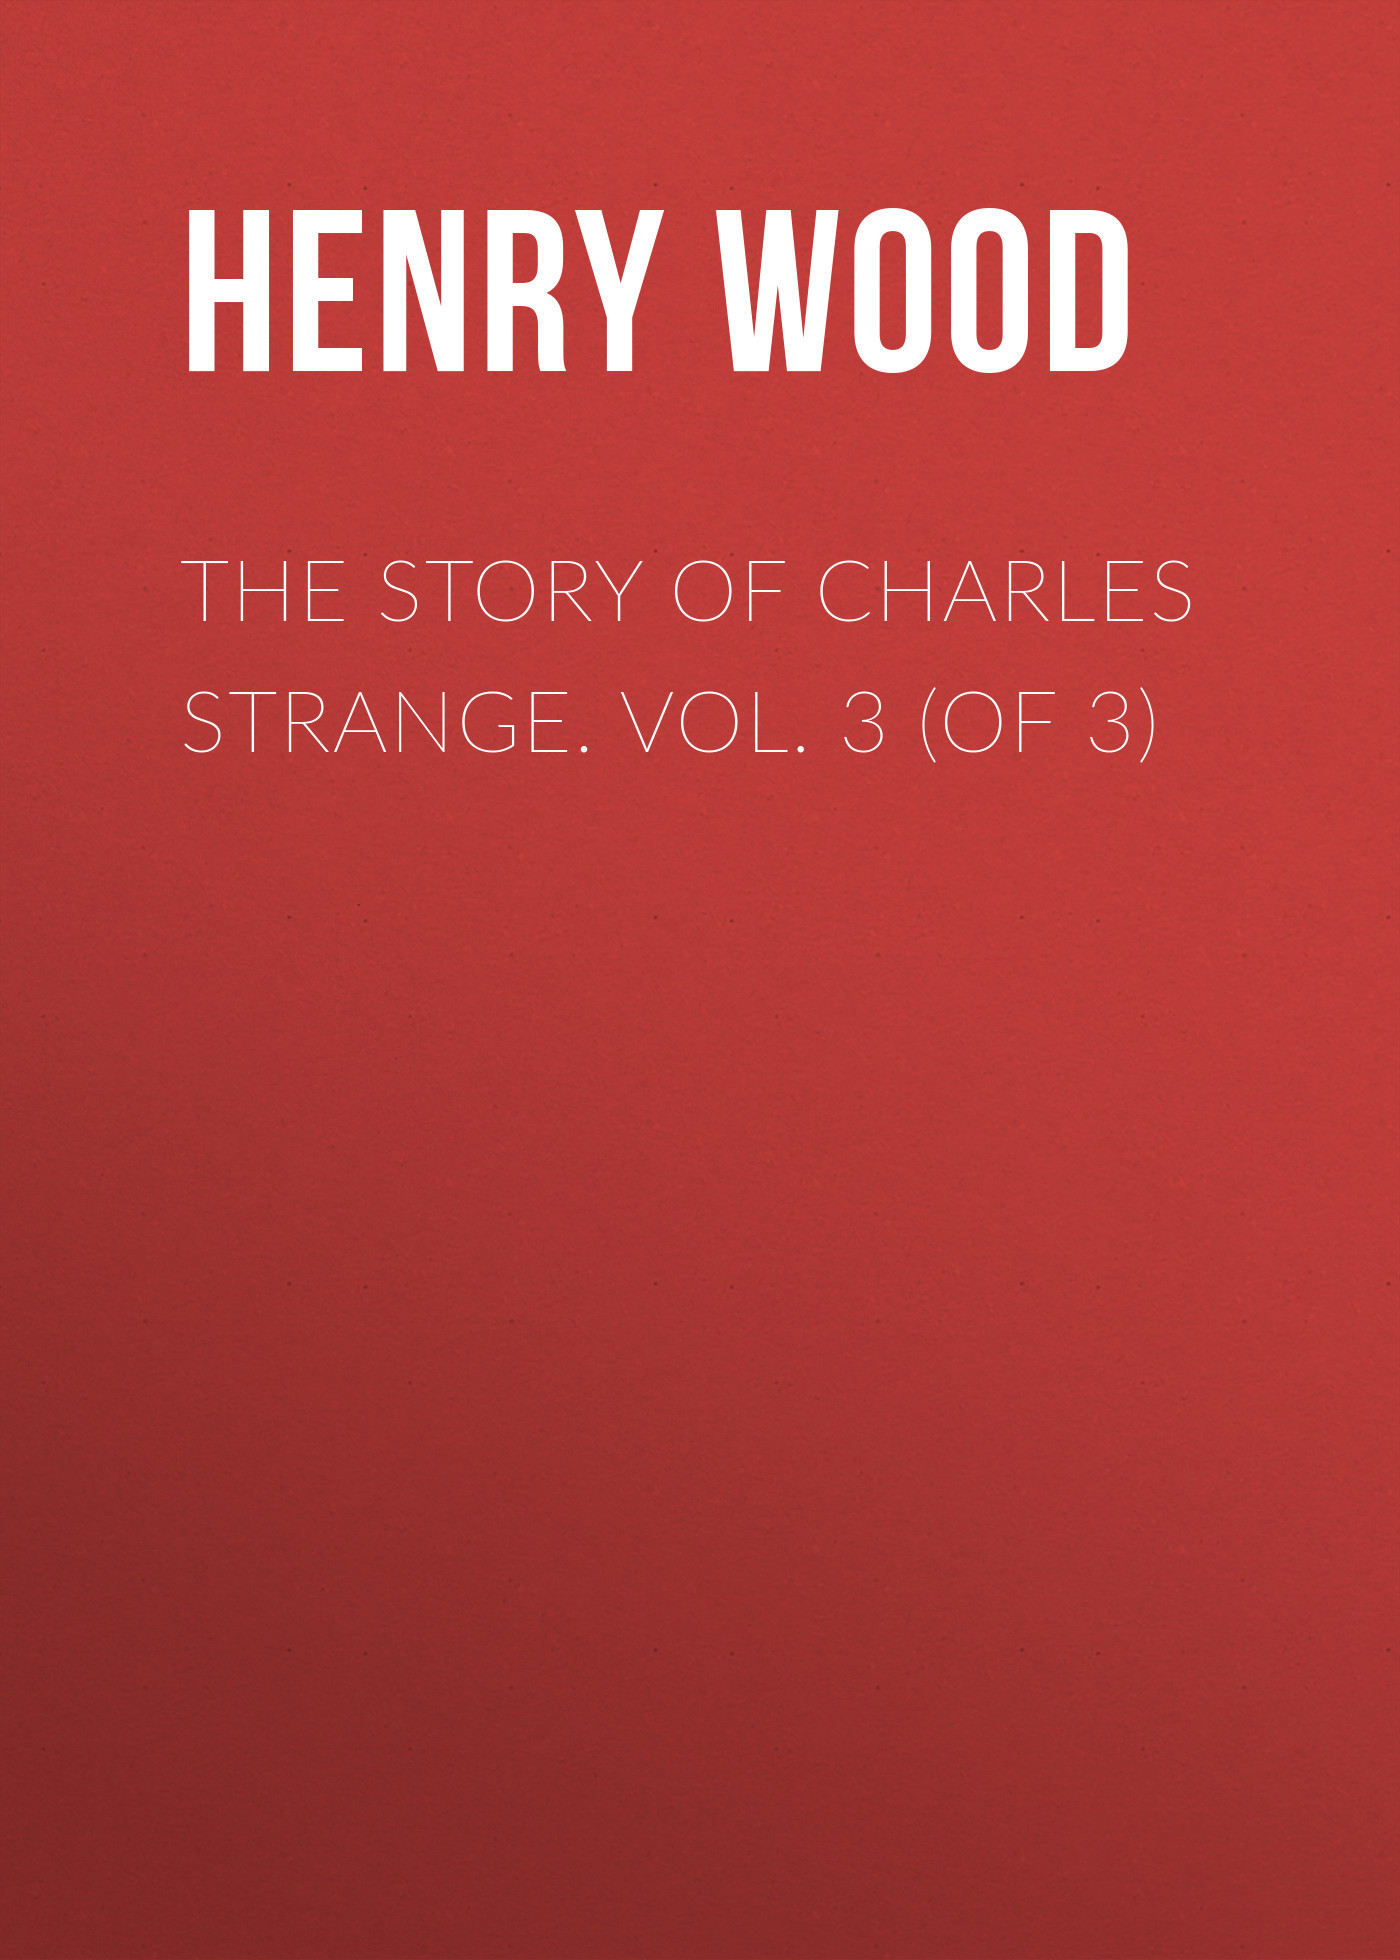 Henry Wood The Story of Charles Strange. Vol. 3 (of 3) excavating the story of charles edward